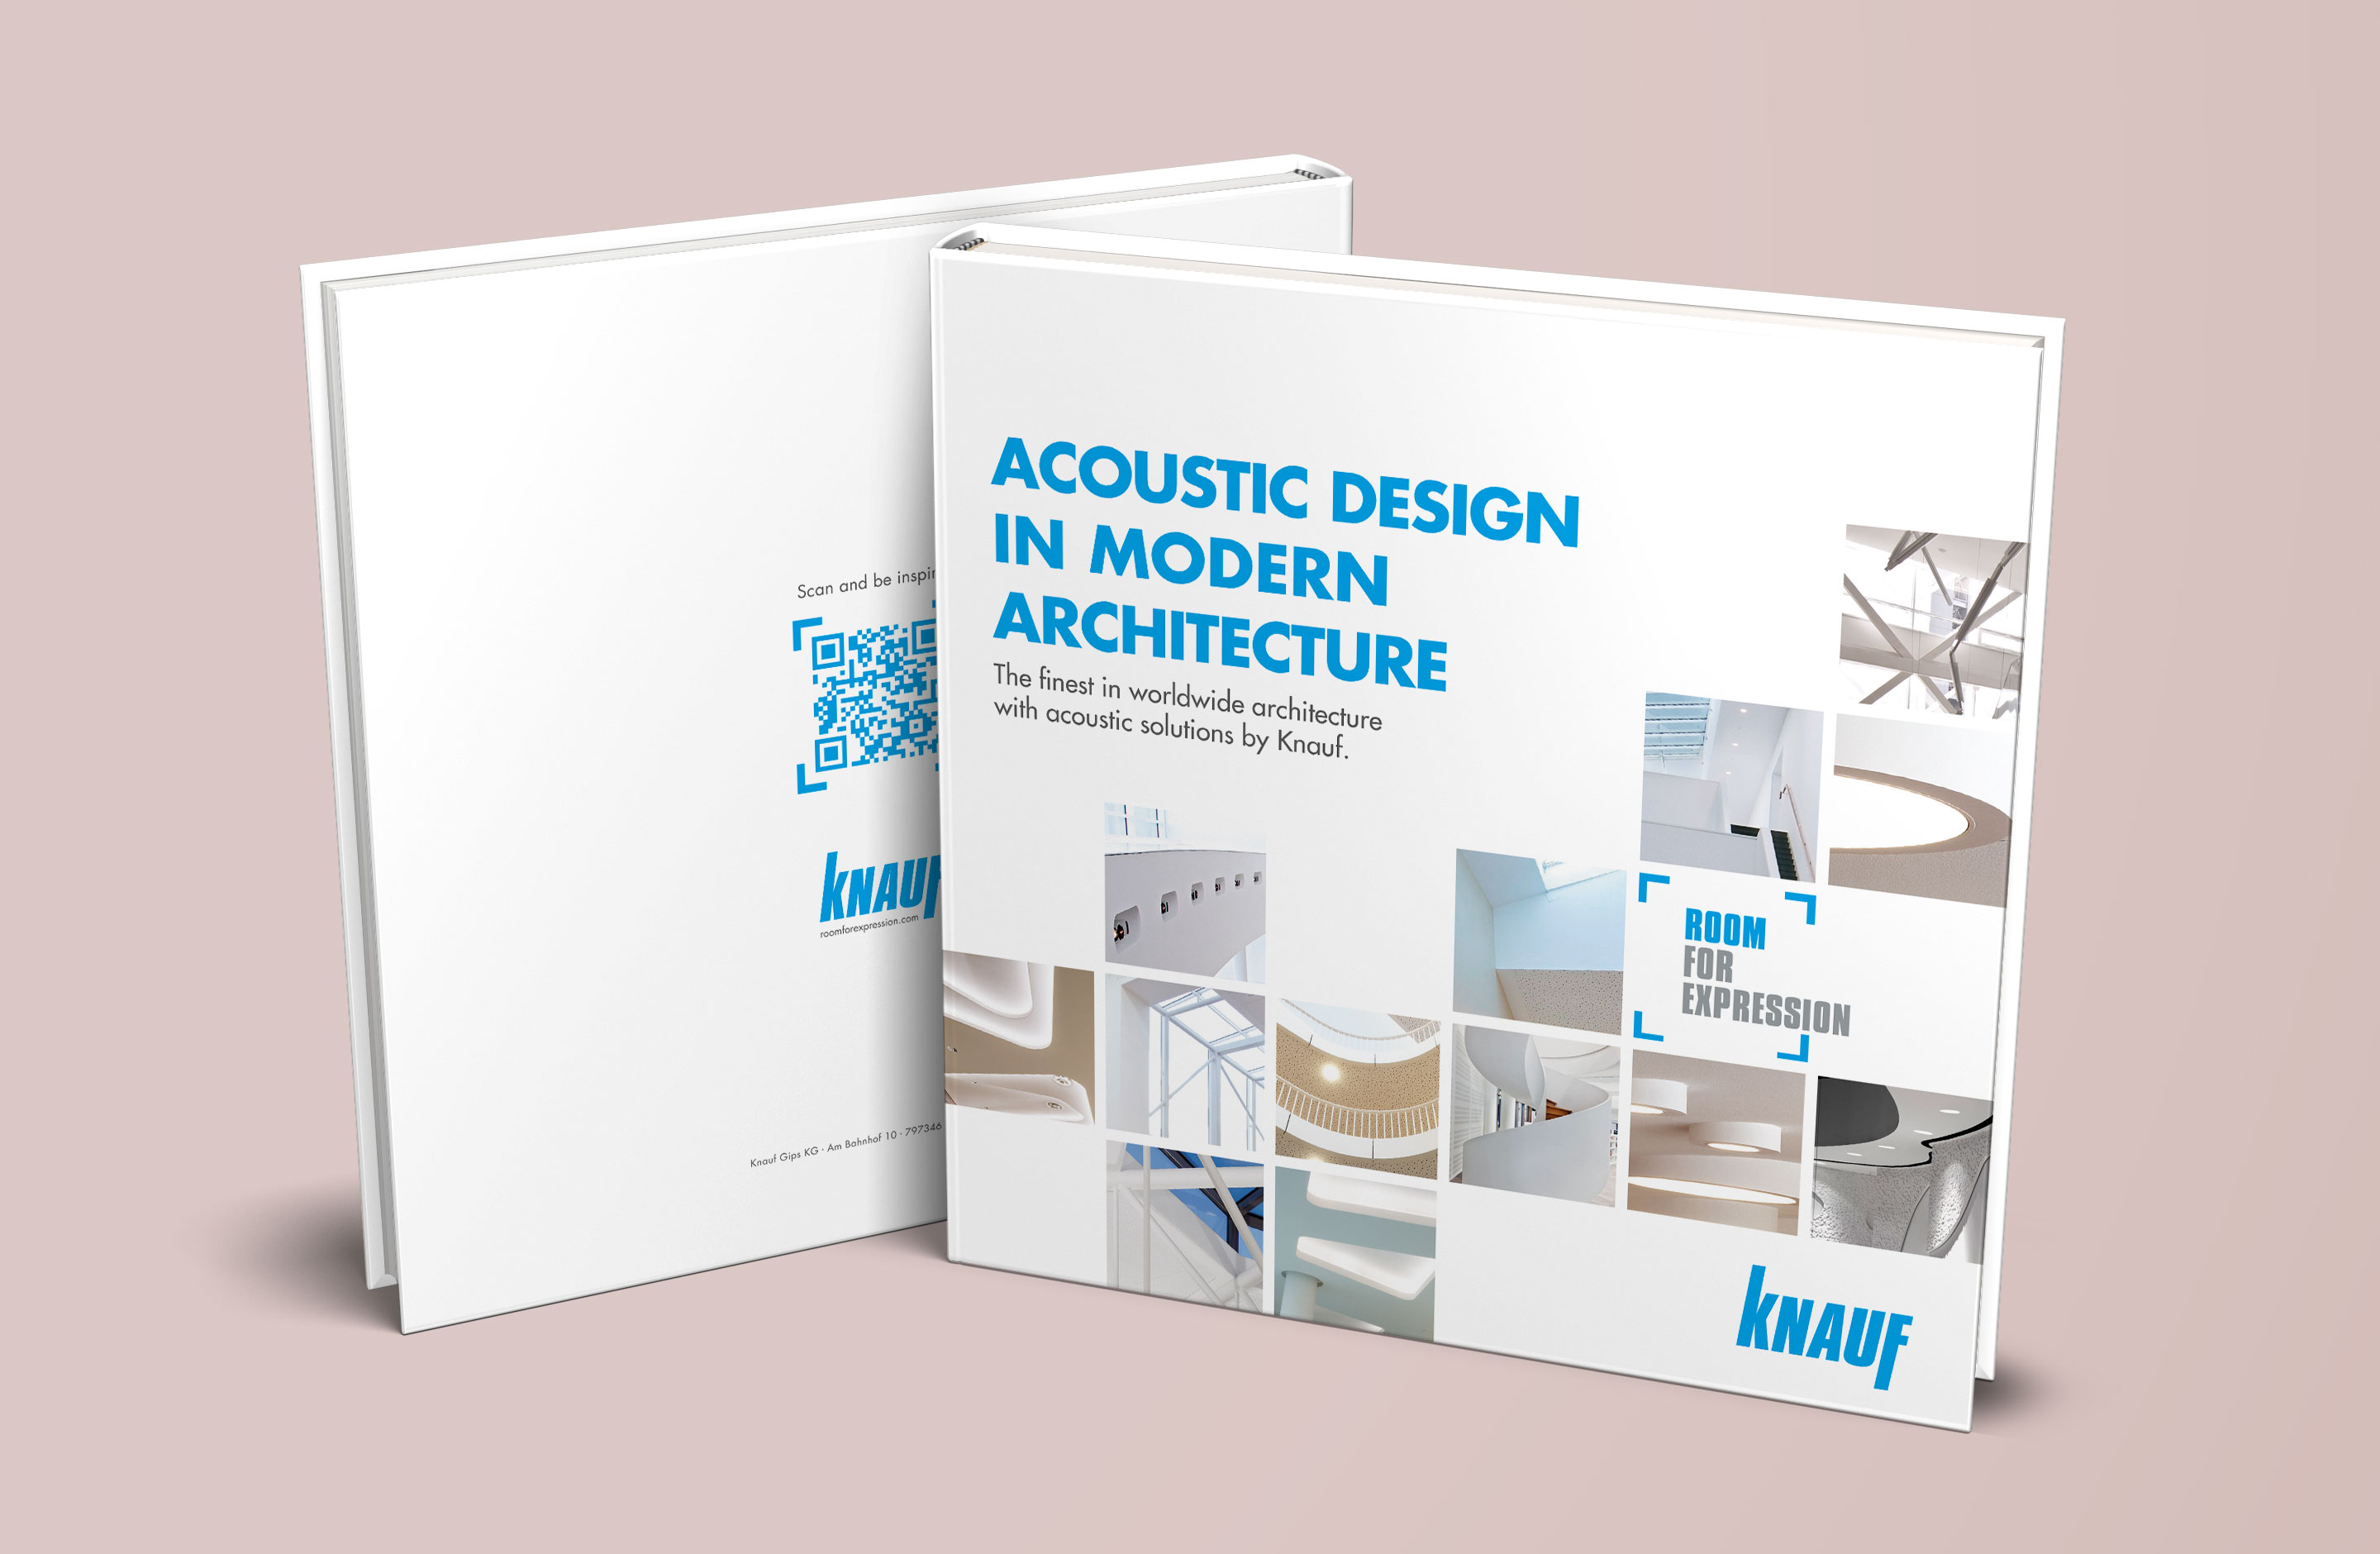 Knauf Lookbook, Room for Expression